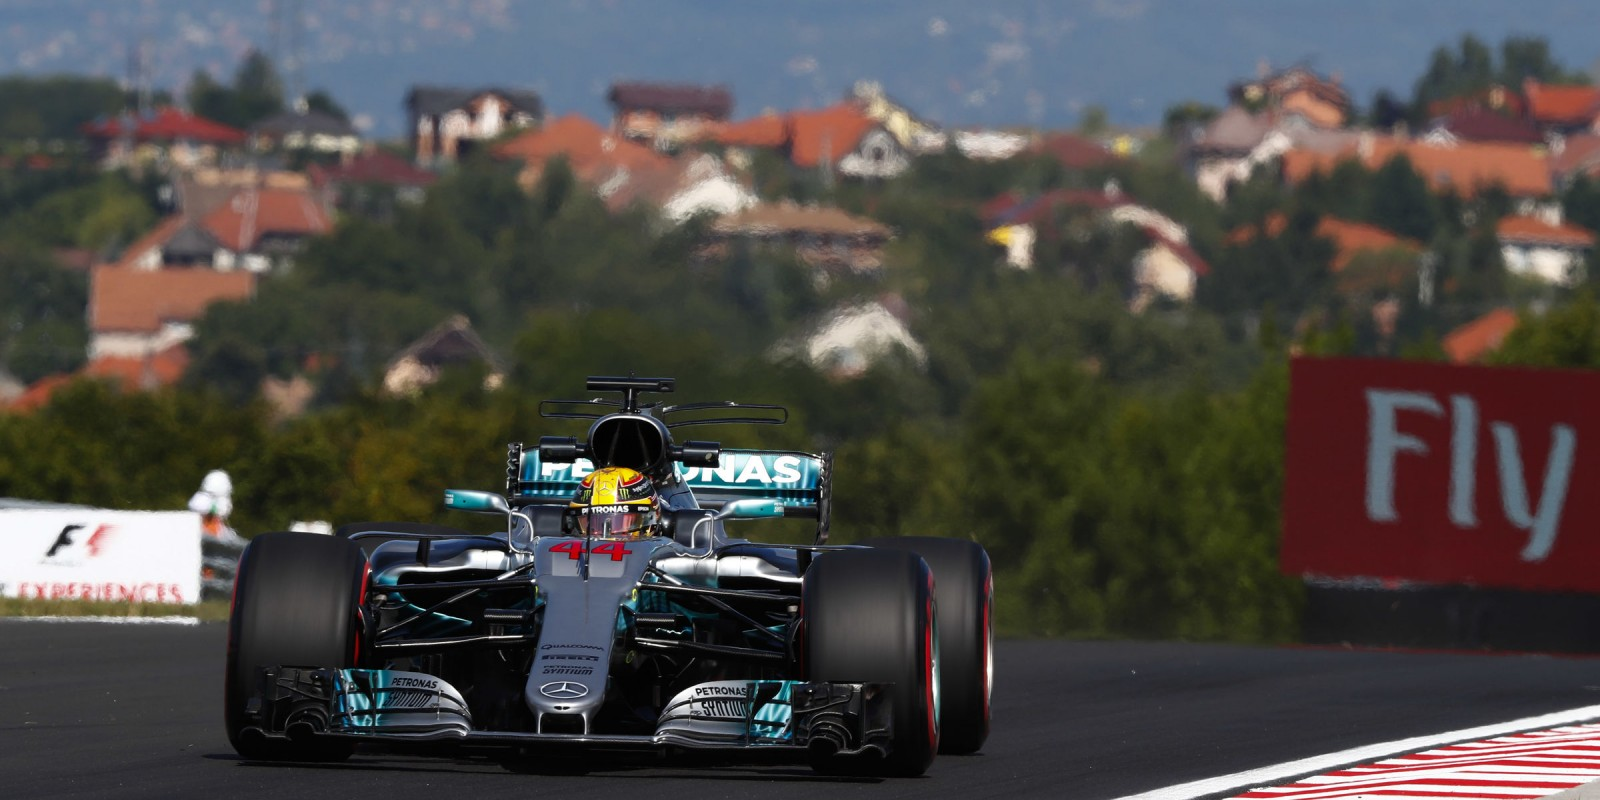 Qualifying images from the 2017 Hungarian Grand Prix